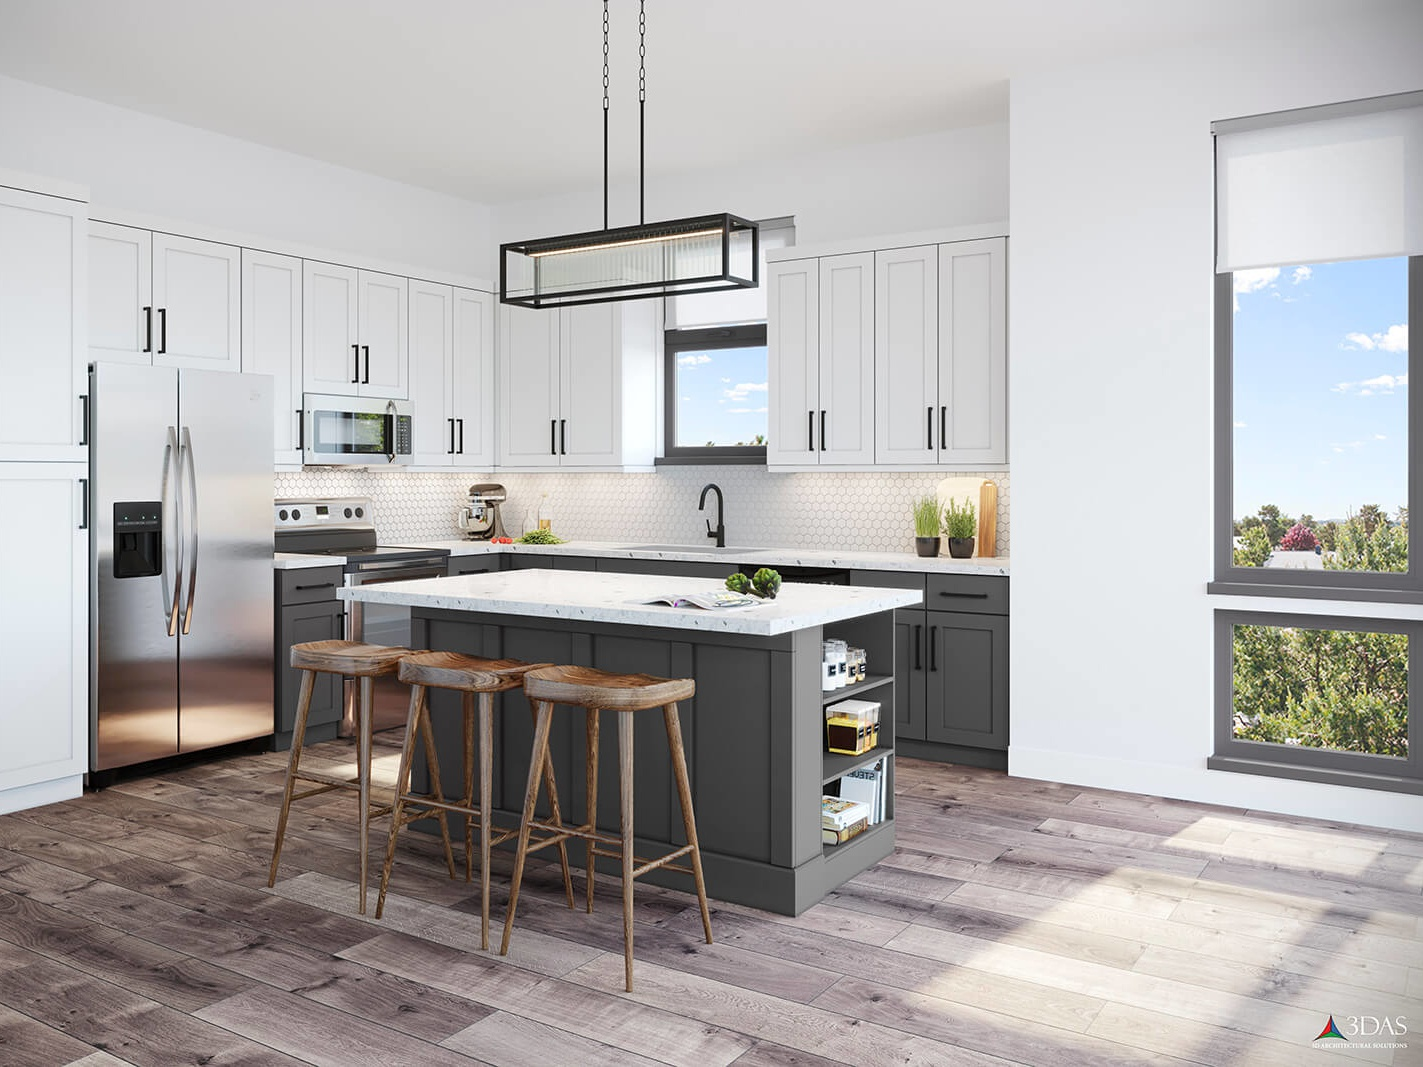 Kitchen 3d Rendering By 3das Dribbble Dribbble